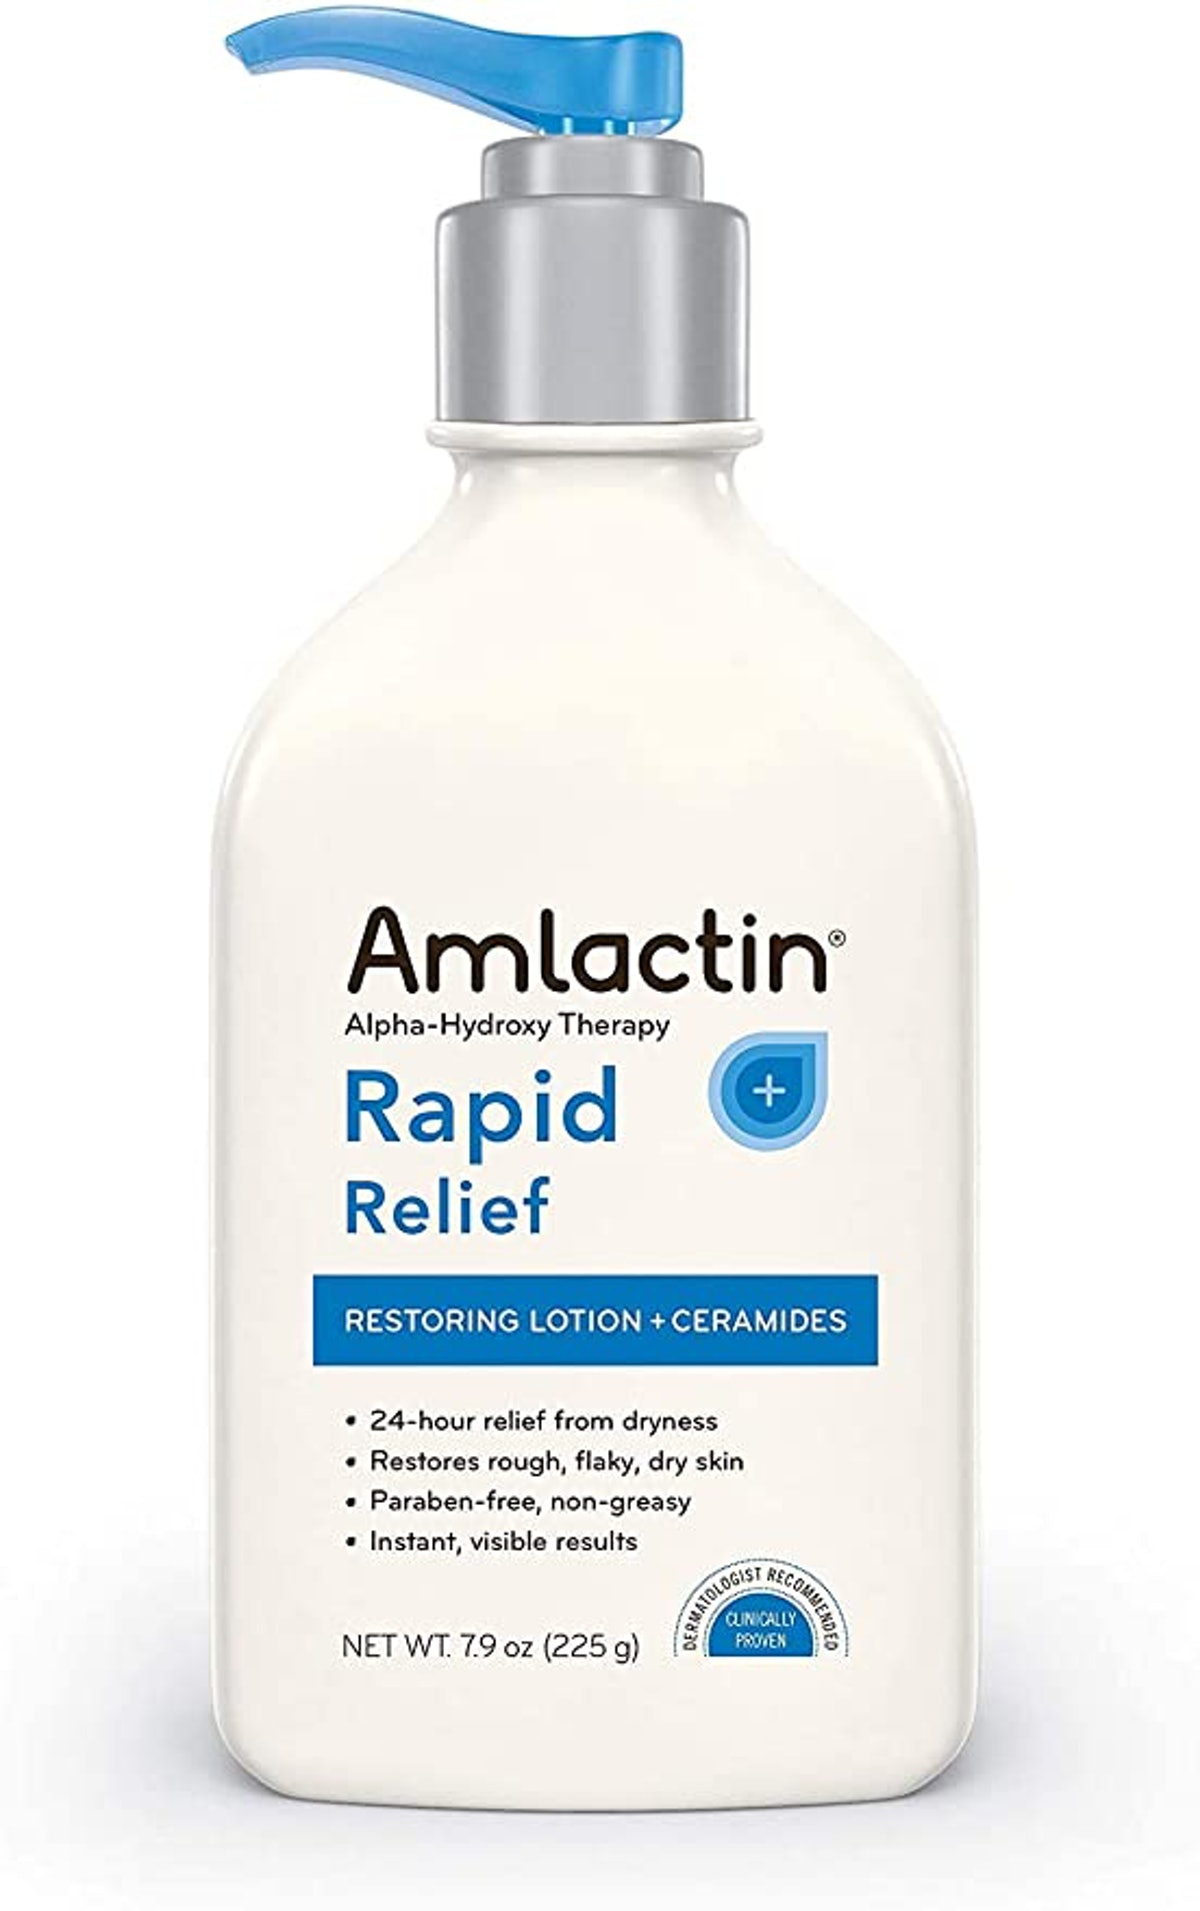 AmLactin Alpha Hydroxy Therapy Rapid Relief Restoring Lotion